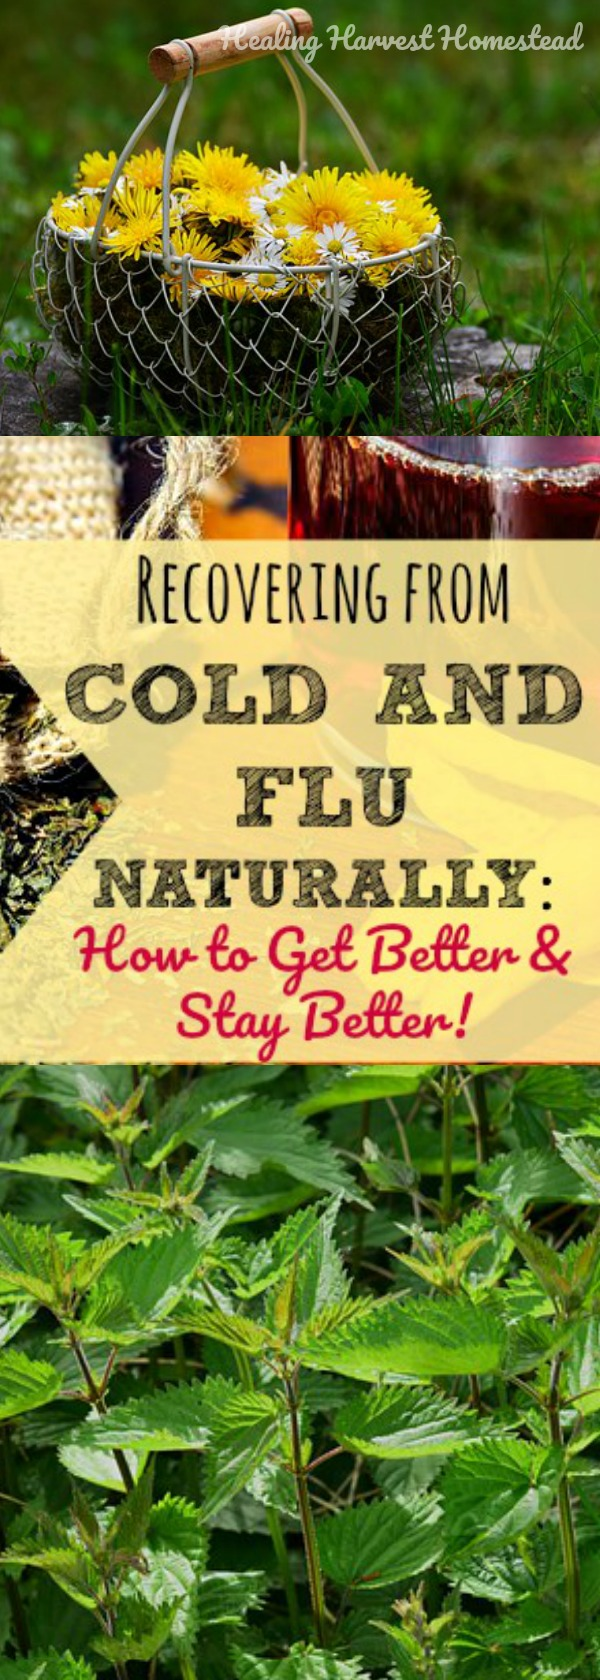 So, you've beaten the cold or flu---or so you think. BAM! Just when you least expect it, that illness comes roaring back! Here's how to speed up the recovery time from a cold and flu and get better fast. Find out how to use herbs and natural methods to keep getting better from a cold or flu and not end up sick again.